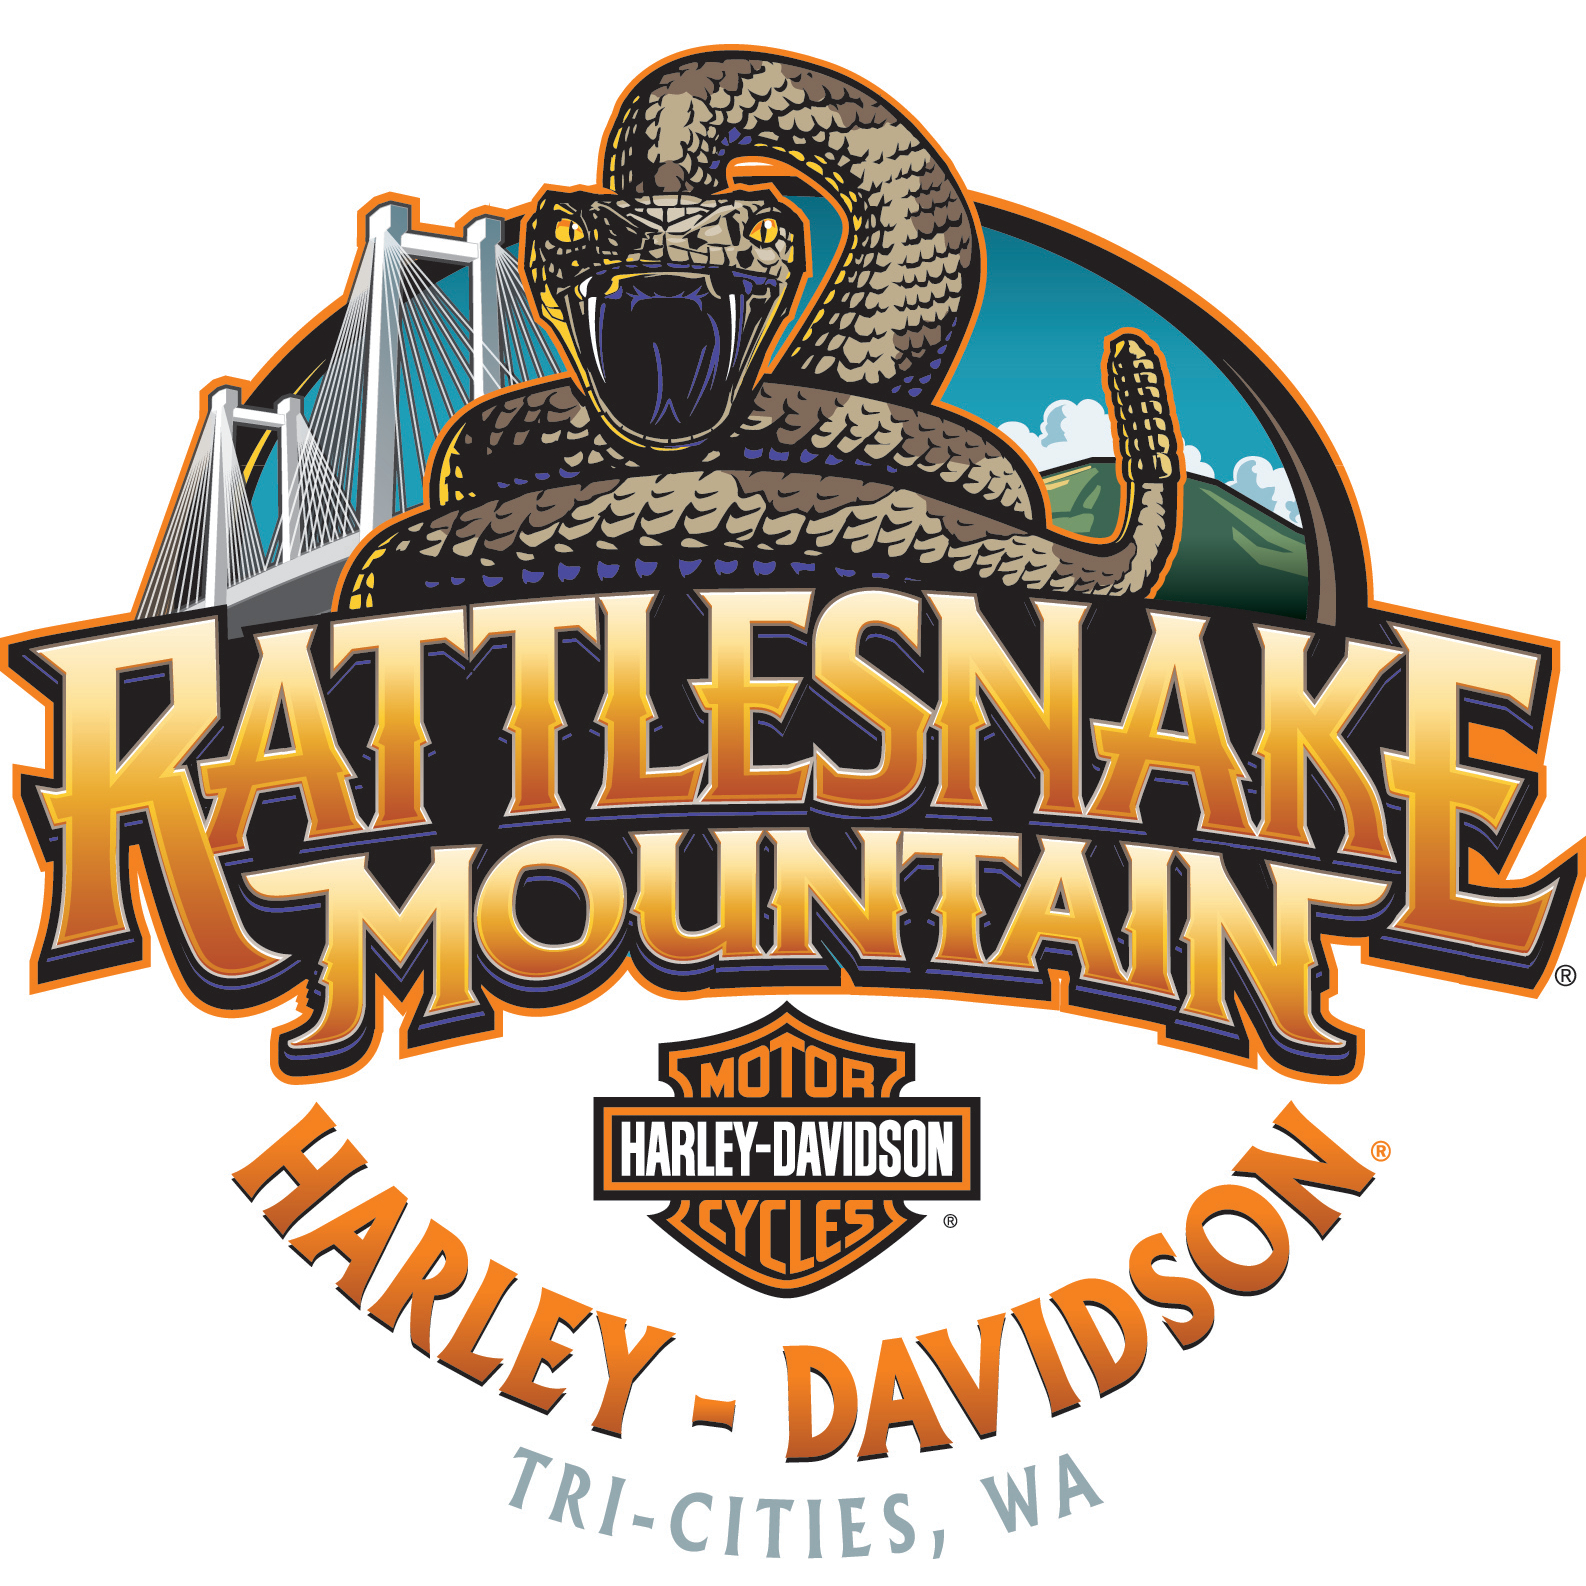 Rattlesnake mountain harley davidson in kennewick wa for Motor scooter dealers near me